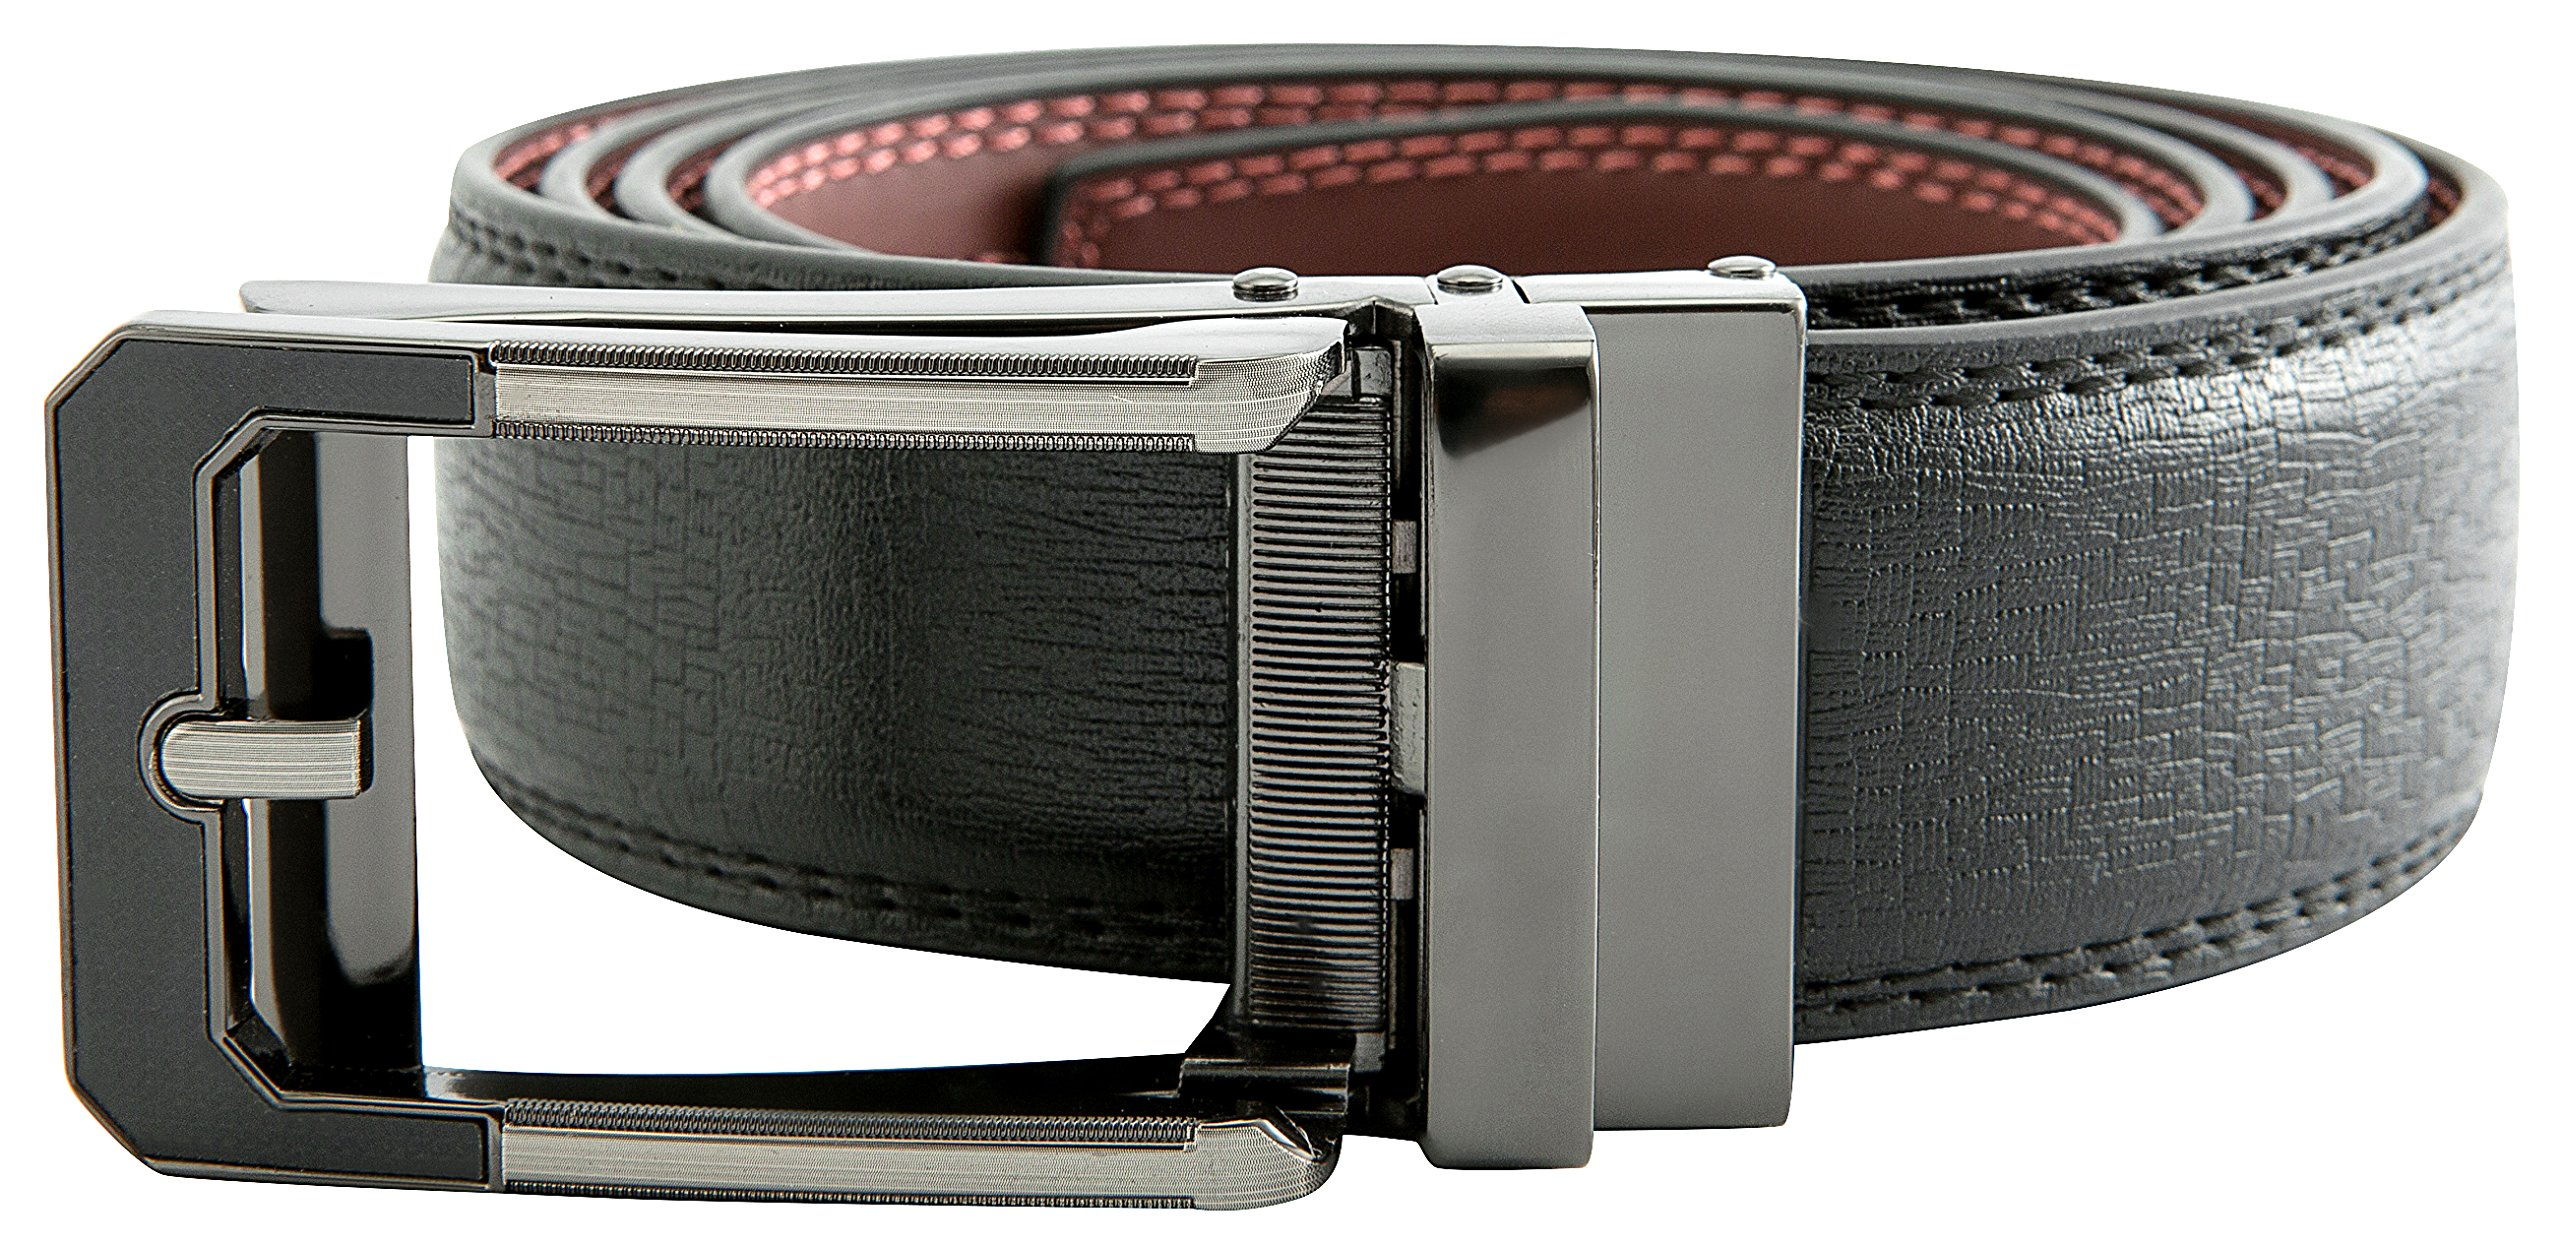 Men's Black Ratchet Belt - Black and Silver Open Style - by J. Dapper by J. Dapper (Image #4)